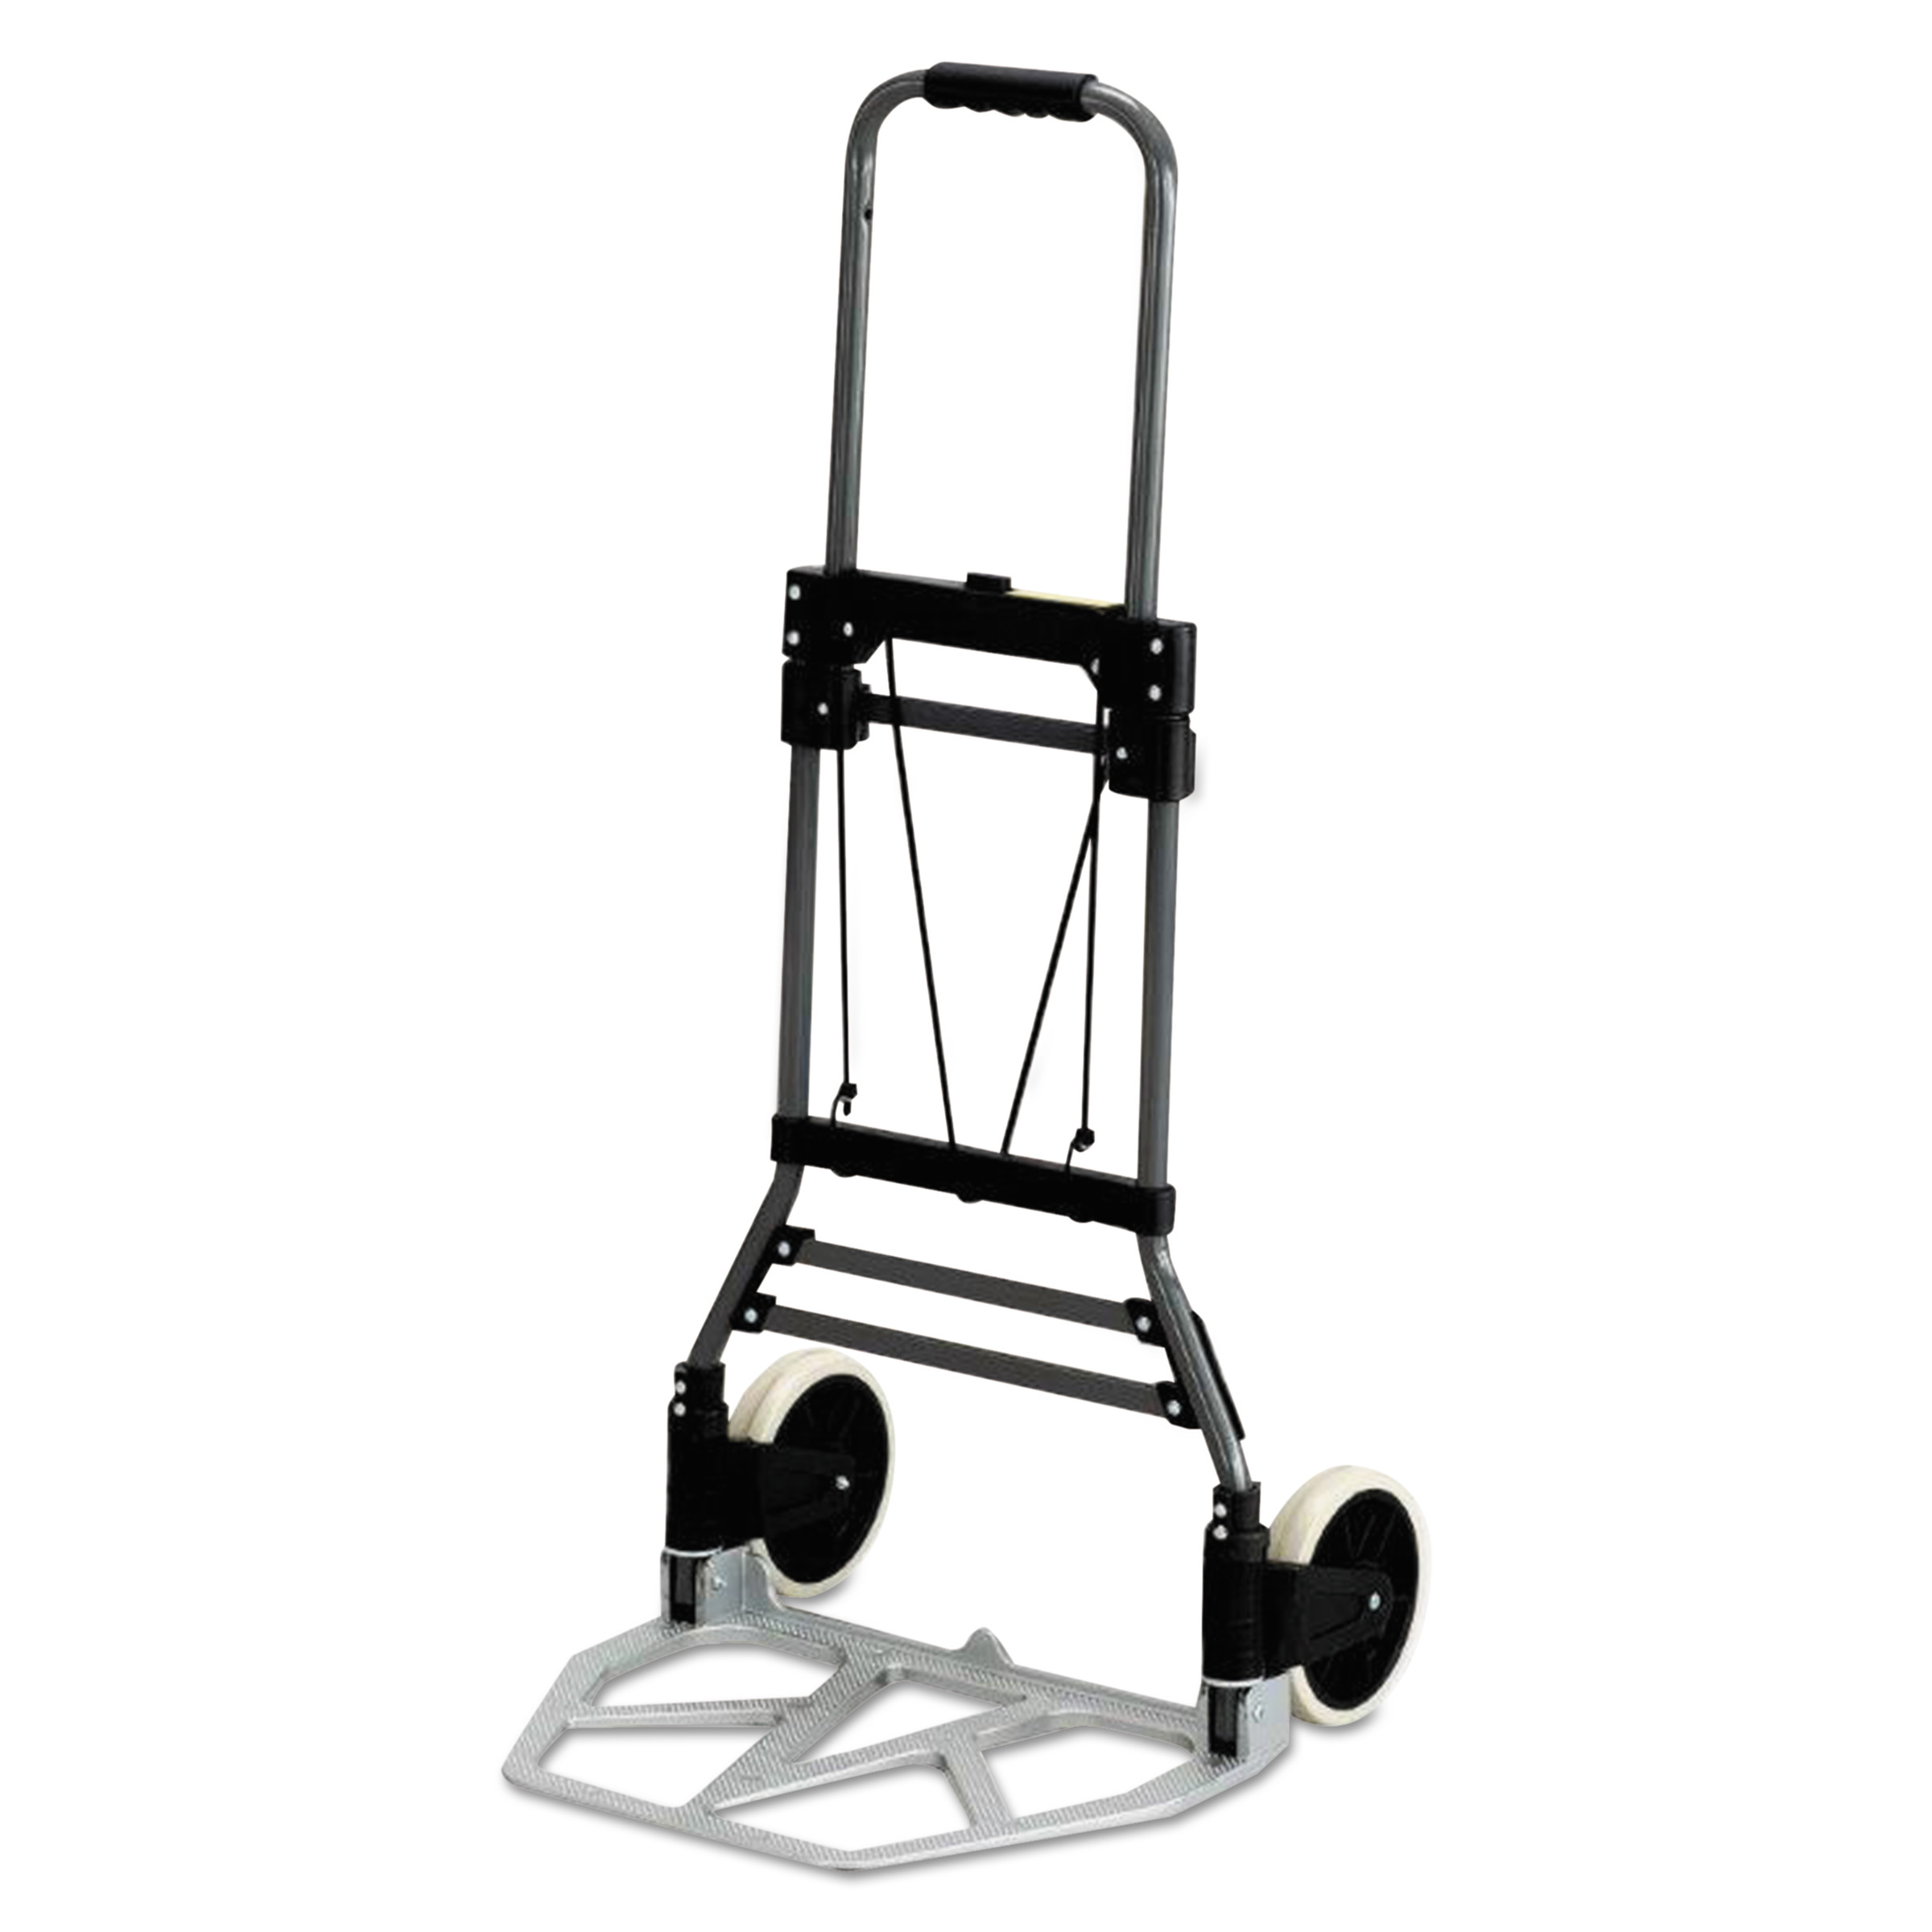 Safco Stow-Away Medium Hand Truck, 275lb Capacity, 19w x 17 3 4d x 38 3 4h, Aluminum by Safco Products